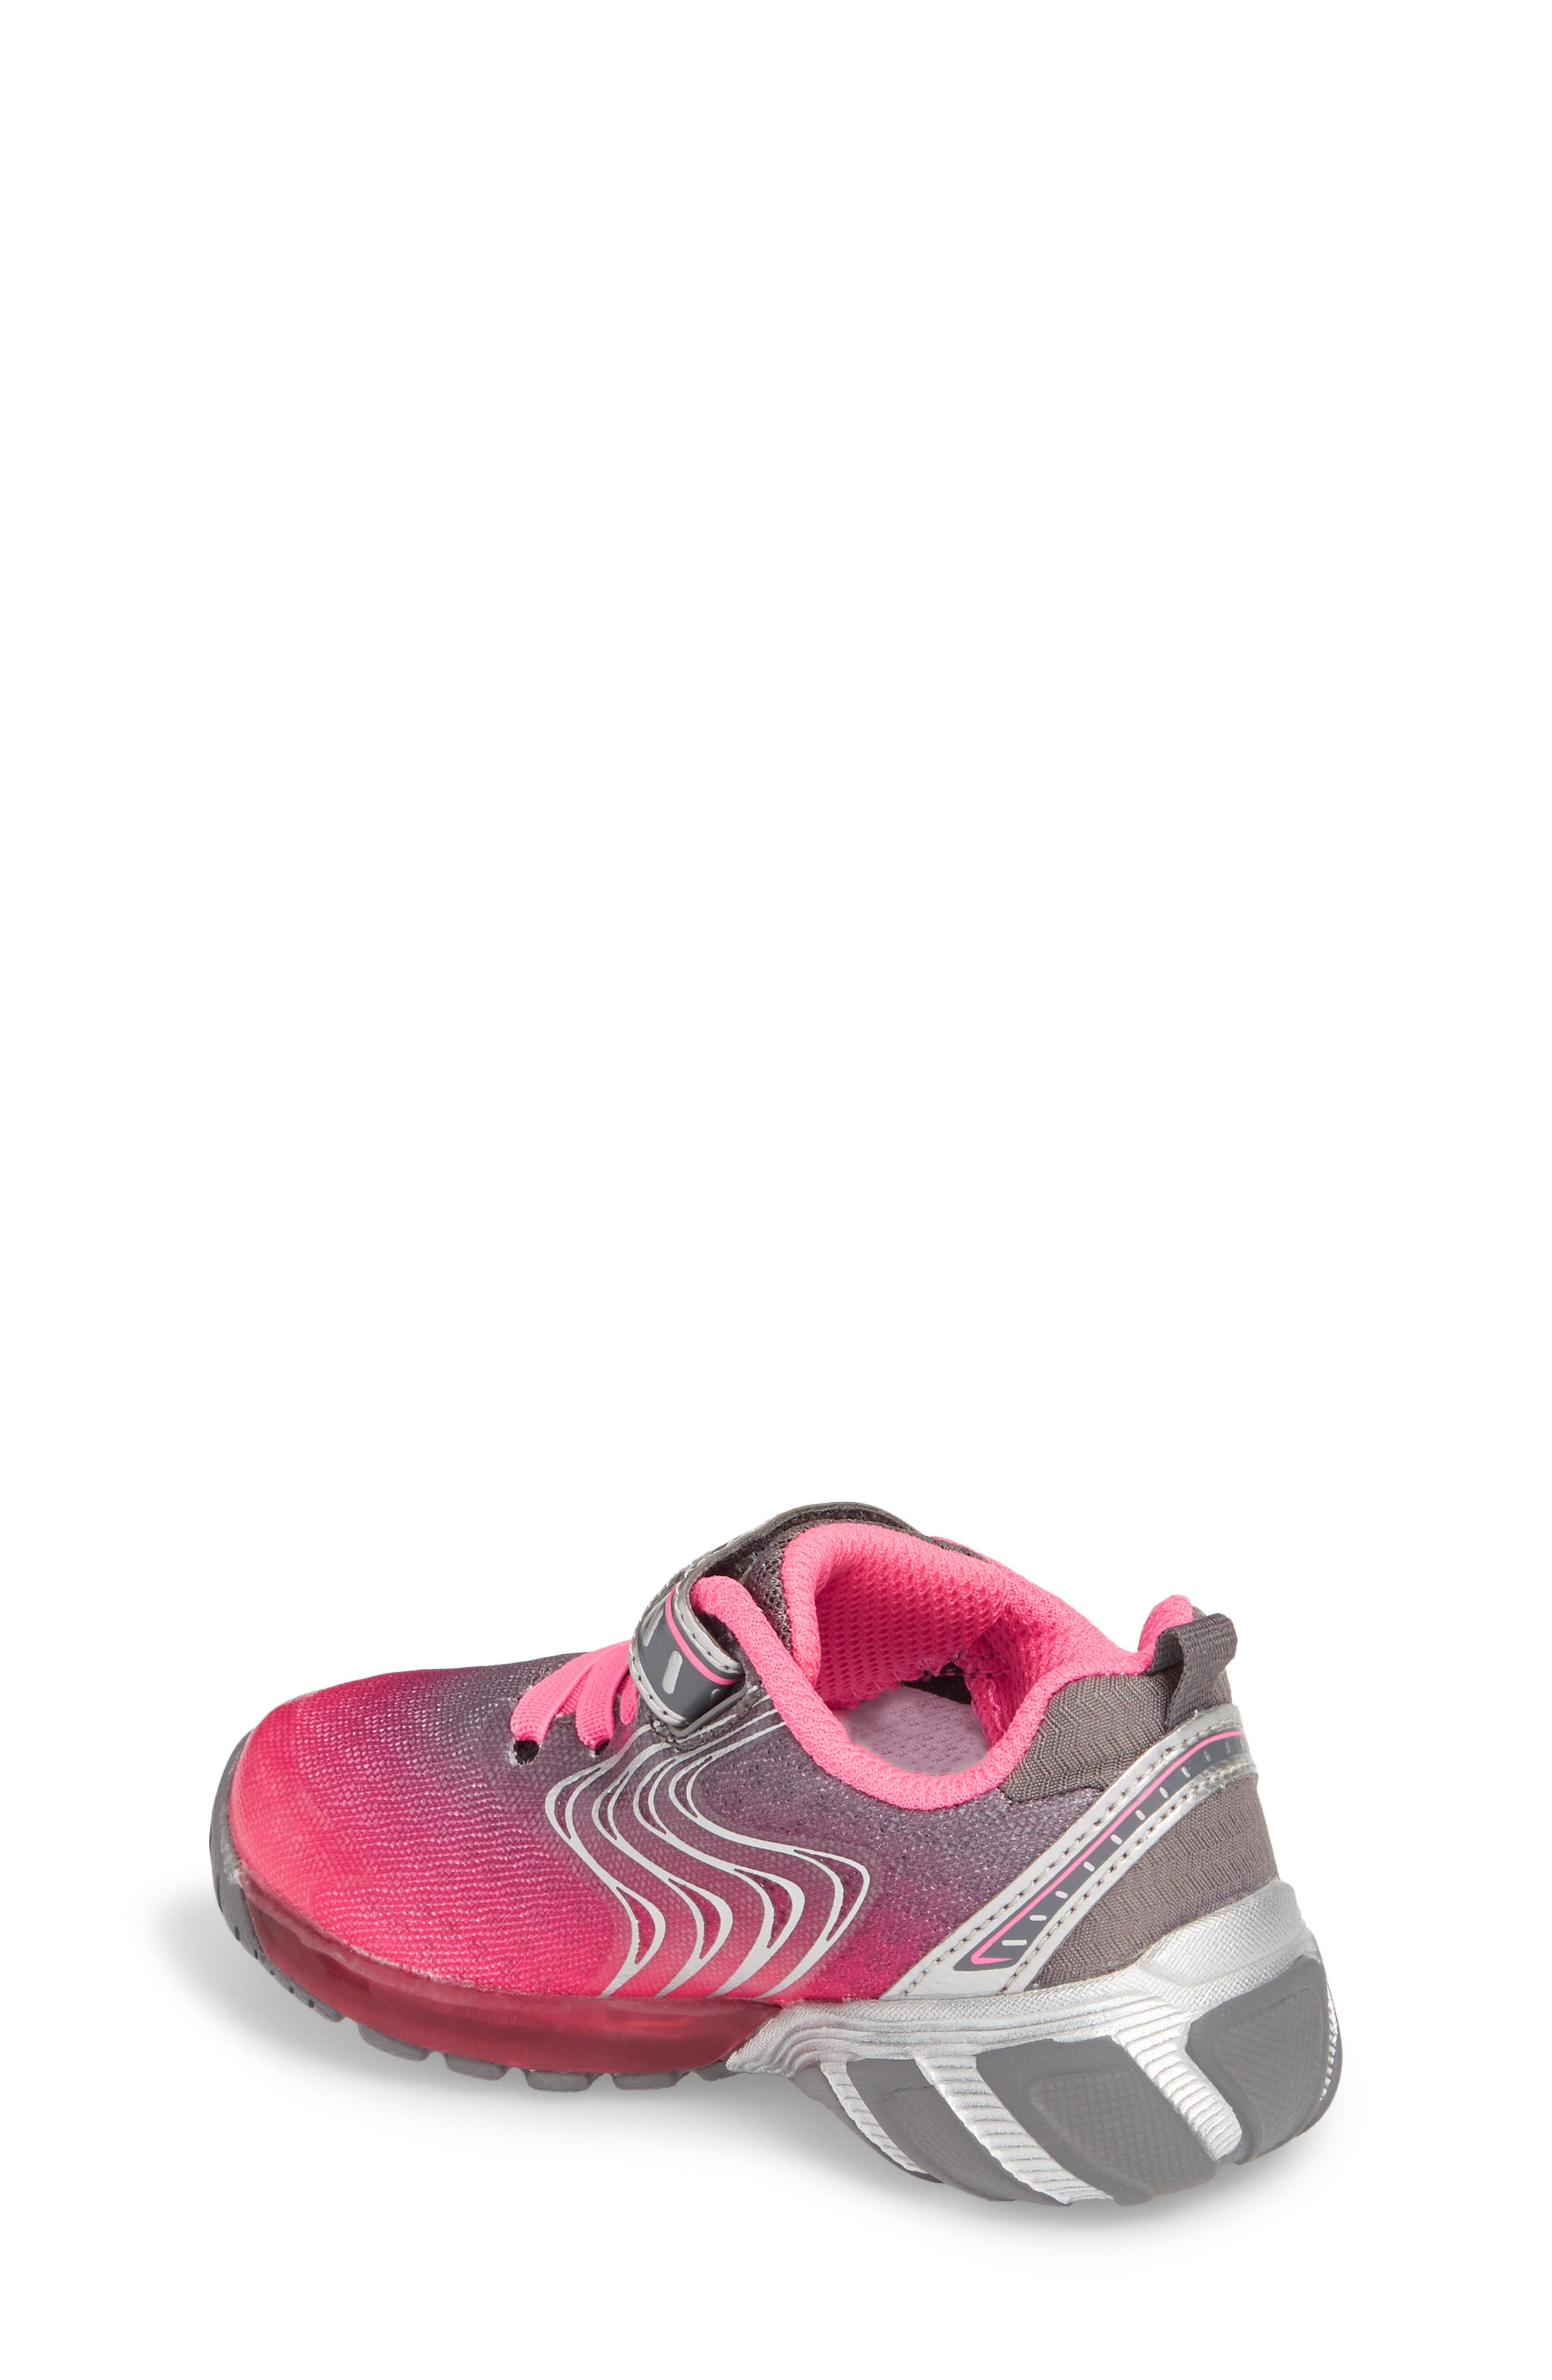 Lights Lux Light-Up Sneaker,                             Alternate thumbnail 2, color,                             Pink Synthetic/ Textile